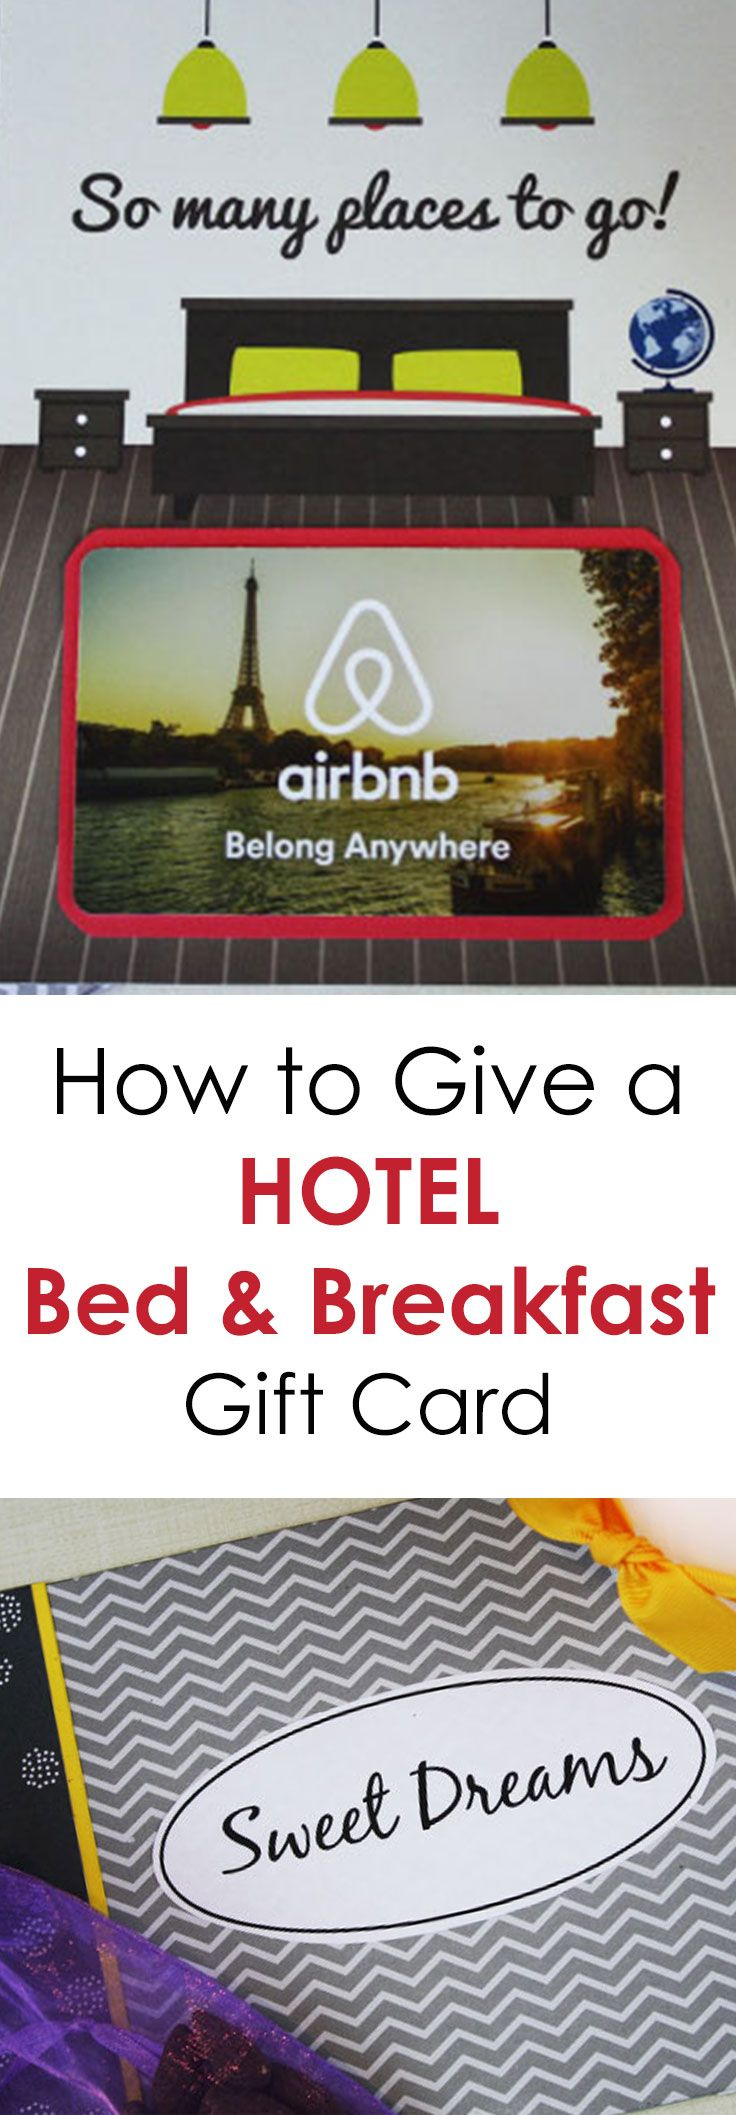 When you want to give someone a hotel gift card or a gift card to a Bed and Breakfast, you might be looking for some clever ideas to make the presentation more personal. Not to worry. I've got 5 free printables, but this one is especially perfect for giving someone the gift or an overnight stay. It works for hotel gift cards, bed and breakfast gift cards, and other lodging needs.